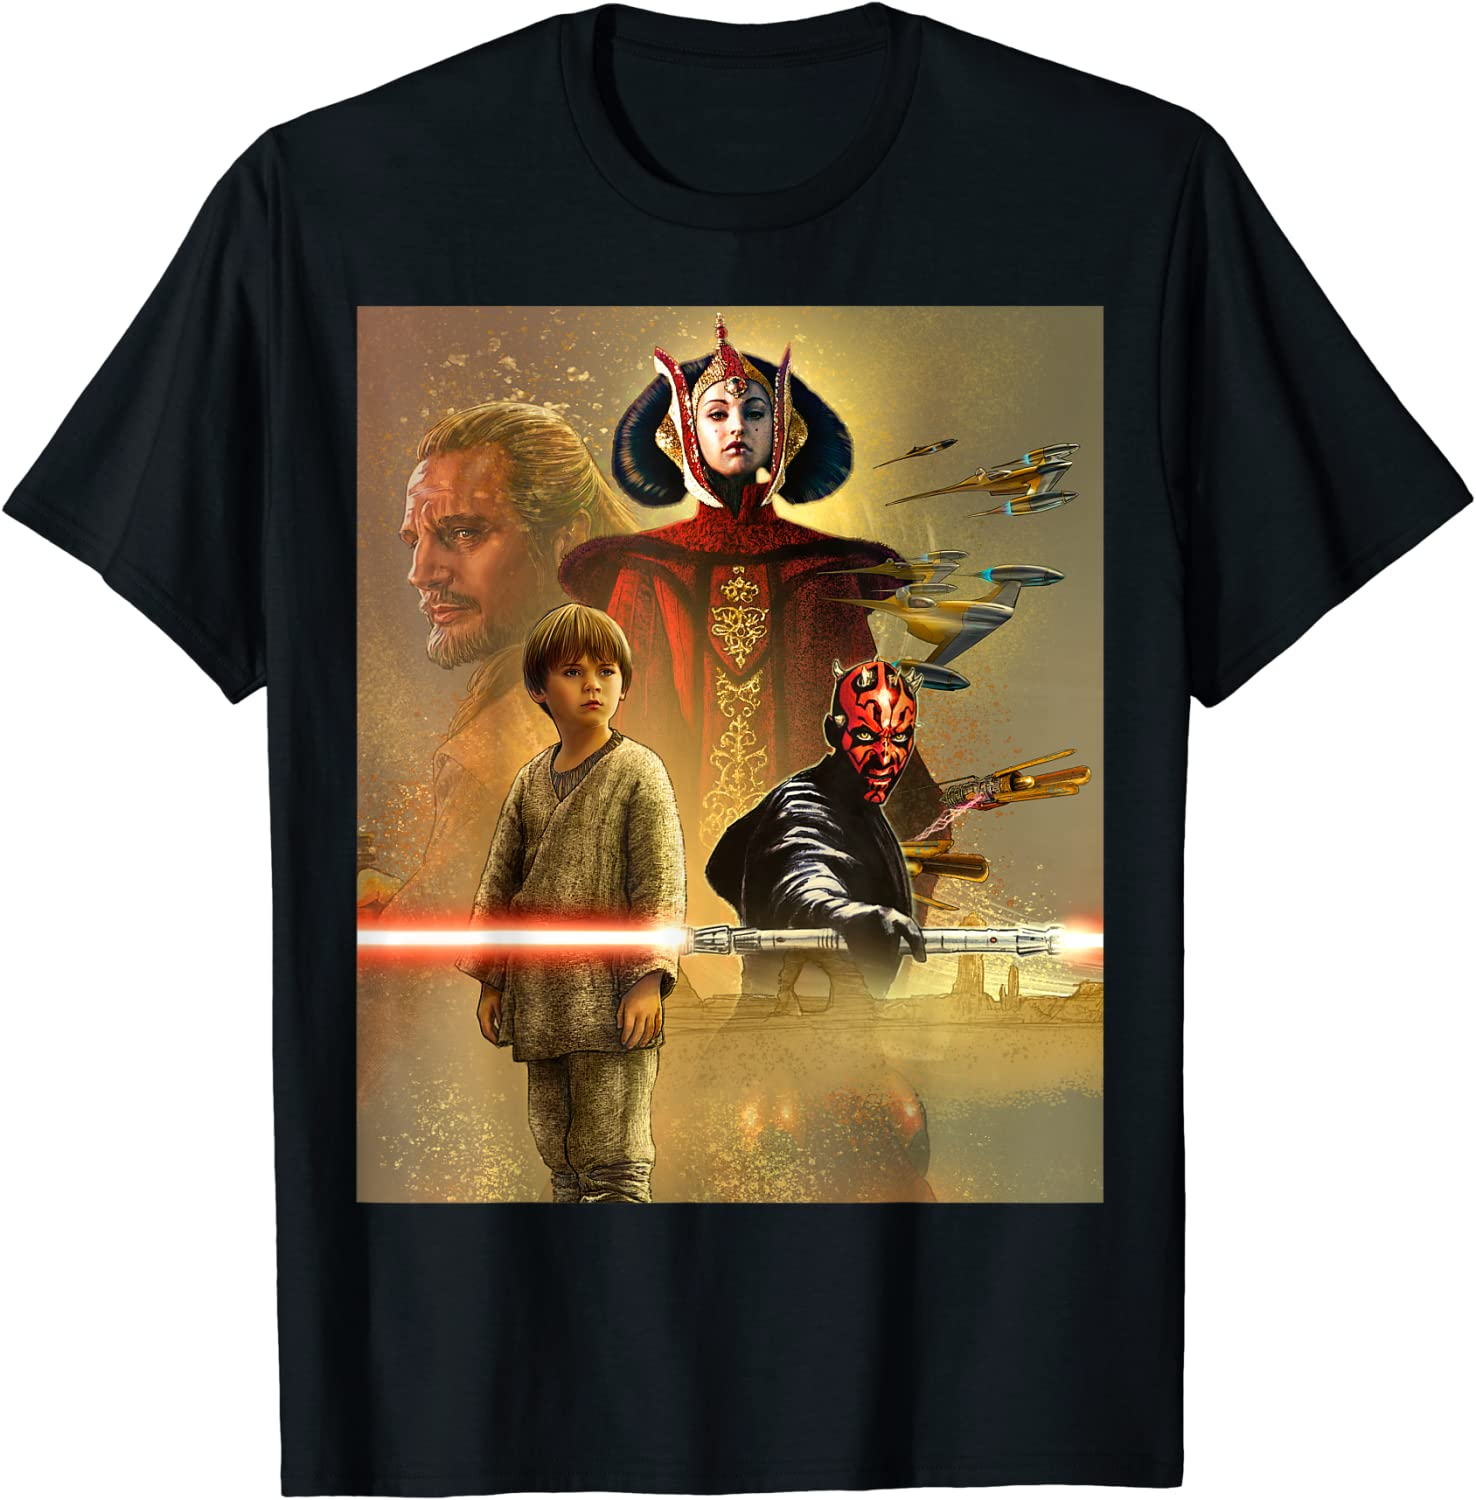 Star Wars Celebration Mural The Phantom Menace T-Shirt